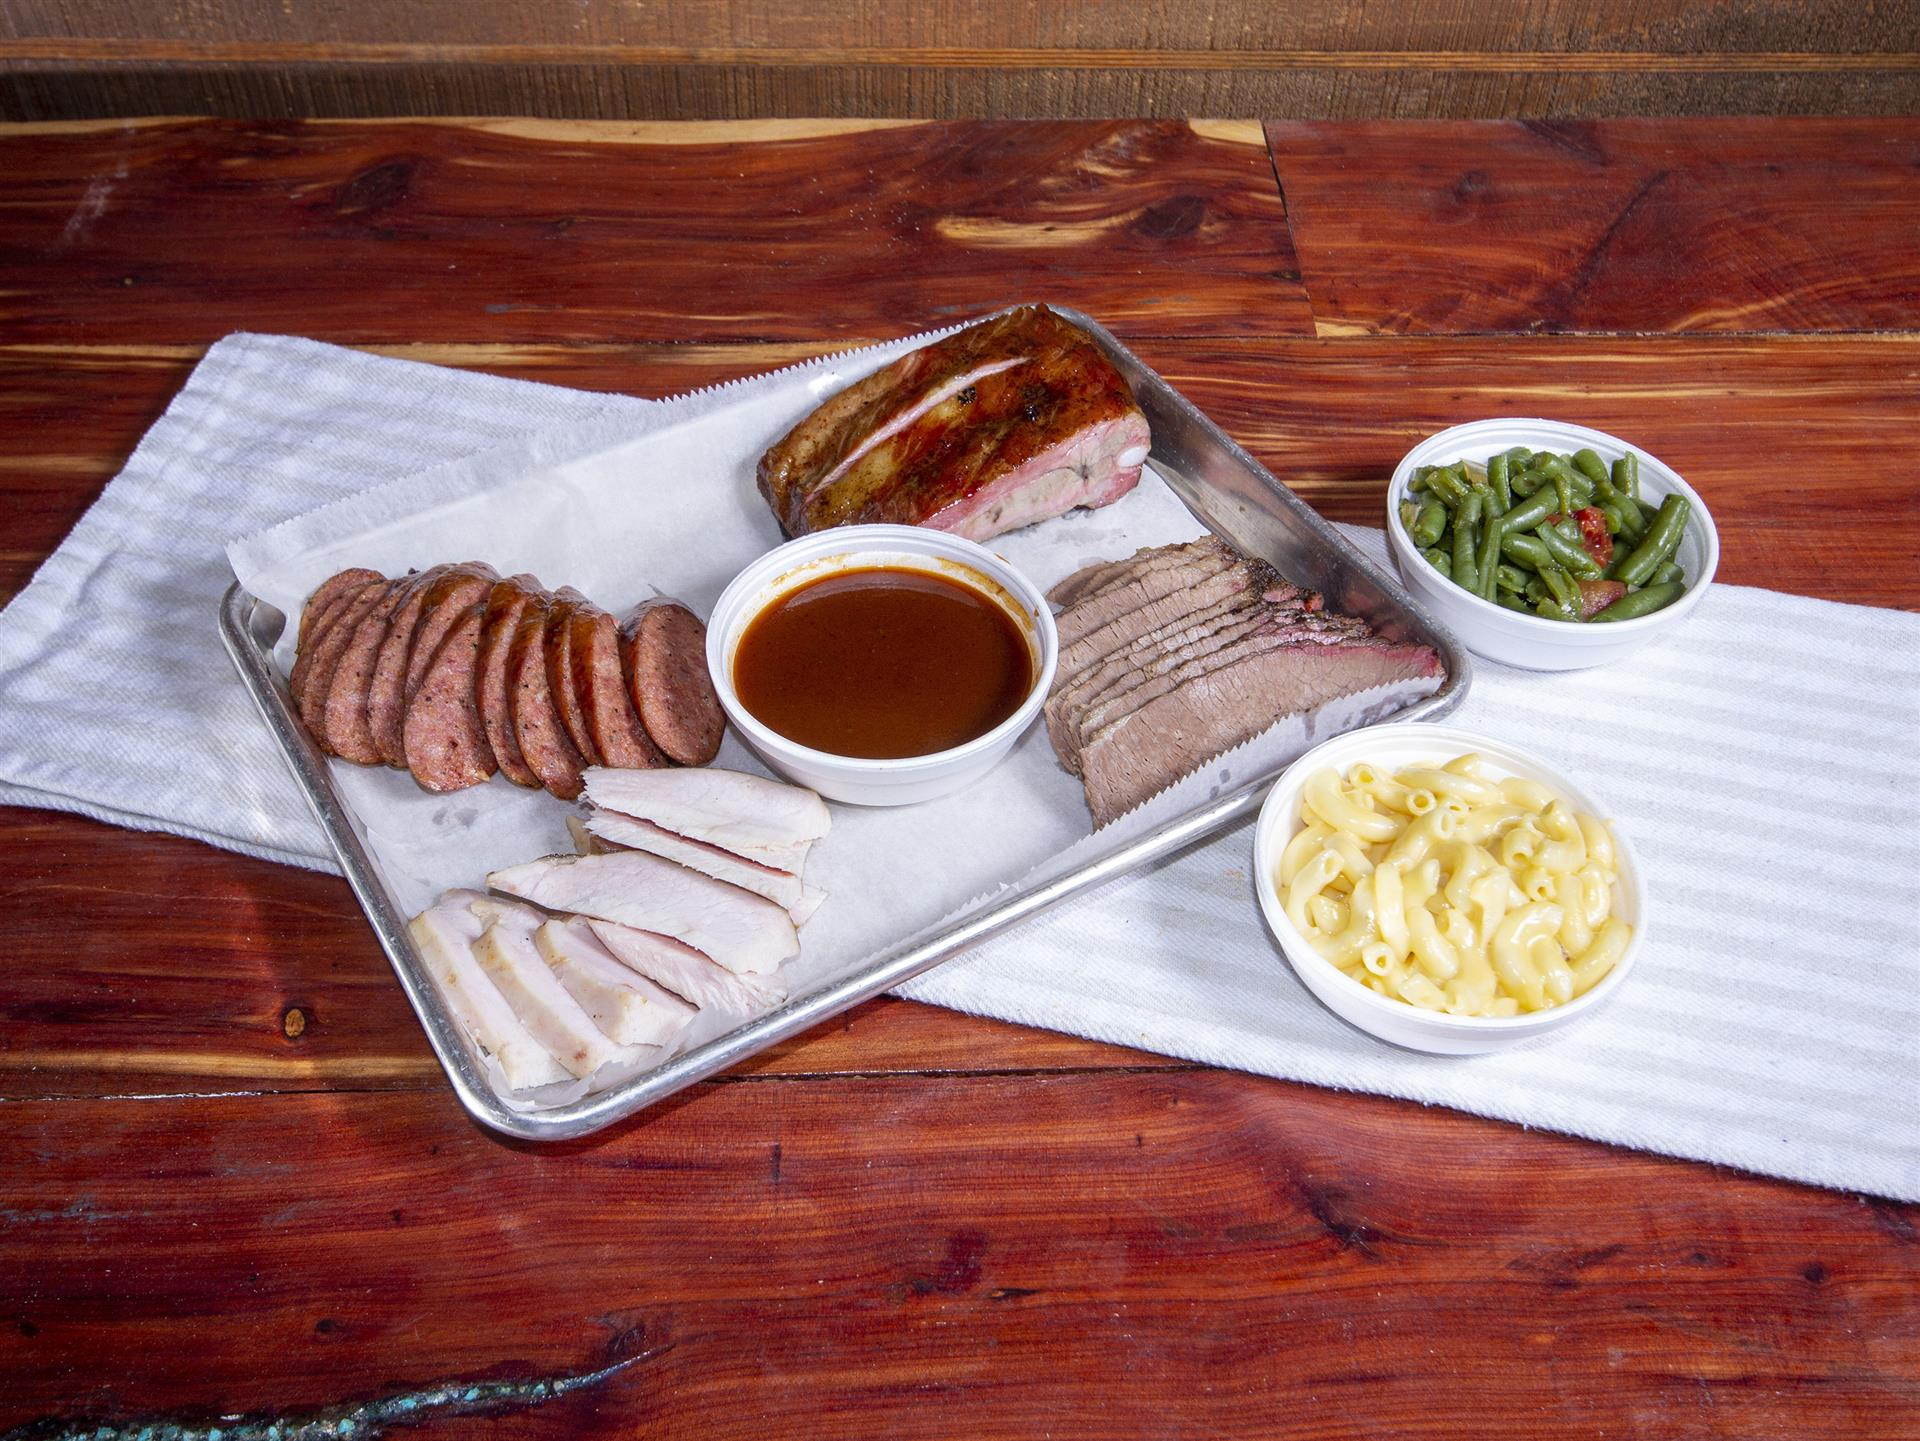 The four meat tray which includes sausage, ribs, turkey, and brisket, with a side of macaroni and cheese and cut green beans